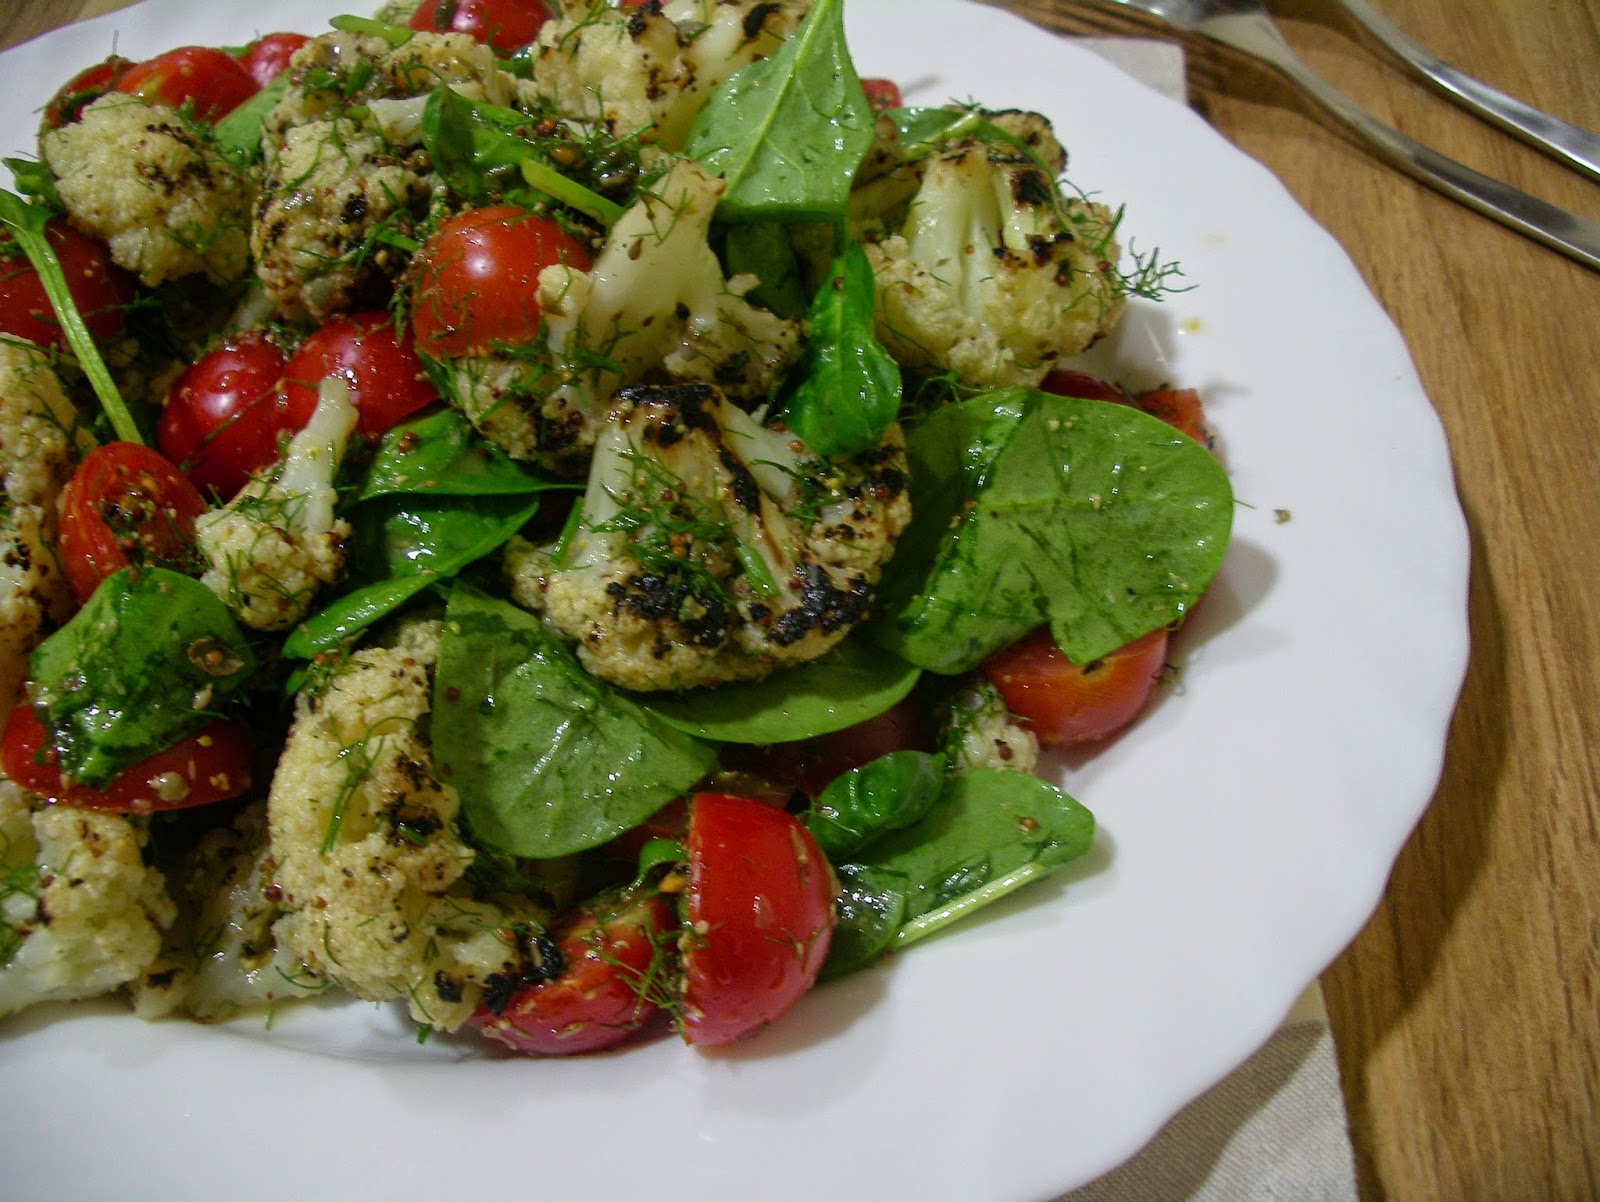 Grilled cauliflower with tomato, dill and capers